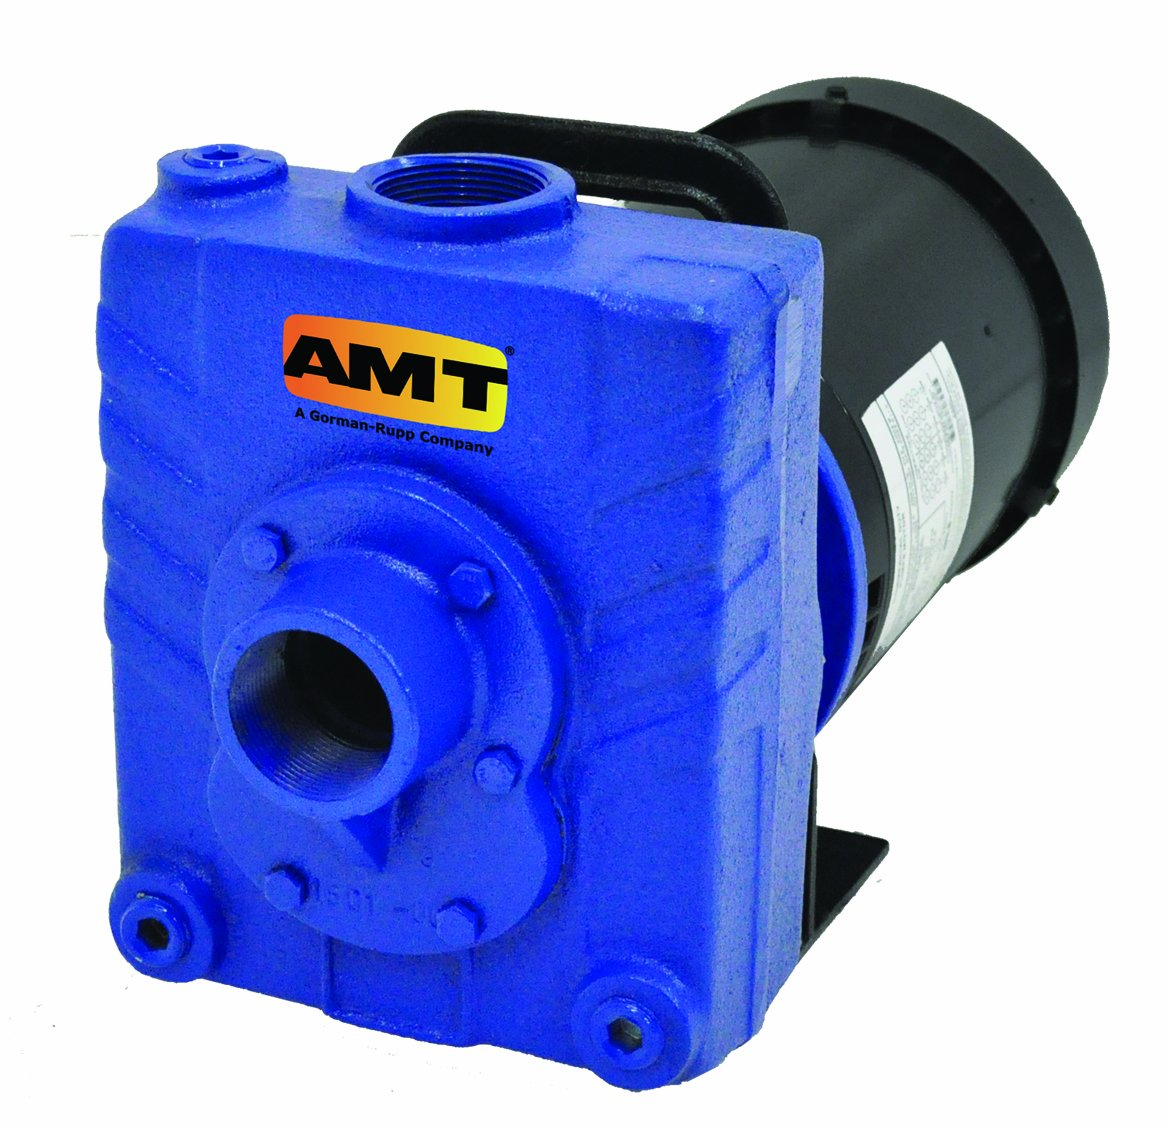 AMT Pump 282K-95 Self-Priming Centrifugal Pump, Cast Iron, 1 HP, 3 Phase, 230/460V, Curve B, 1-1/2'' NPT Female Suction & Discharge Ports